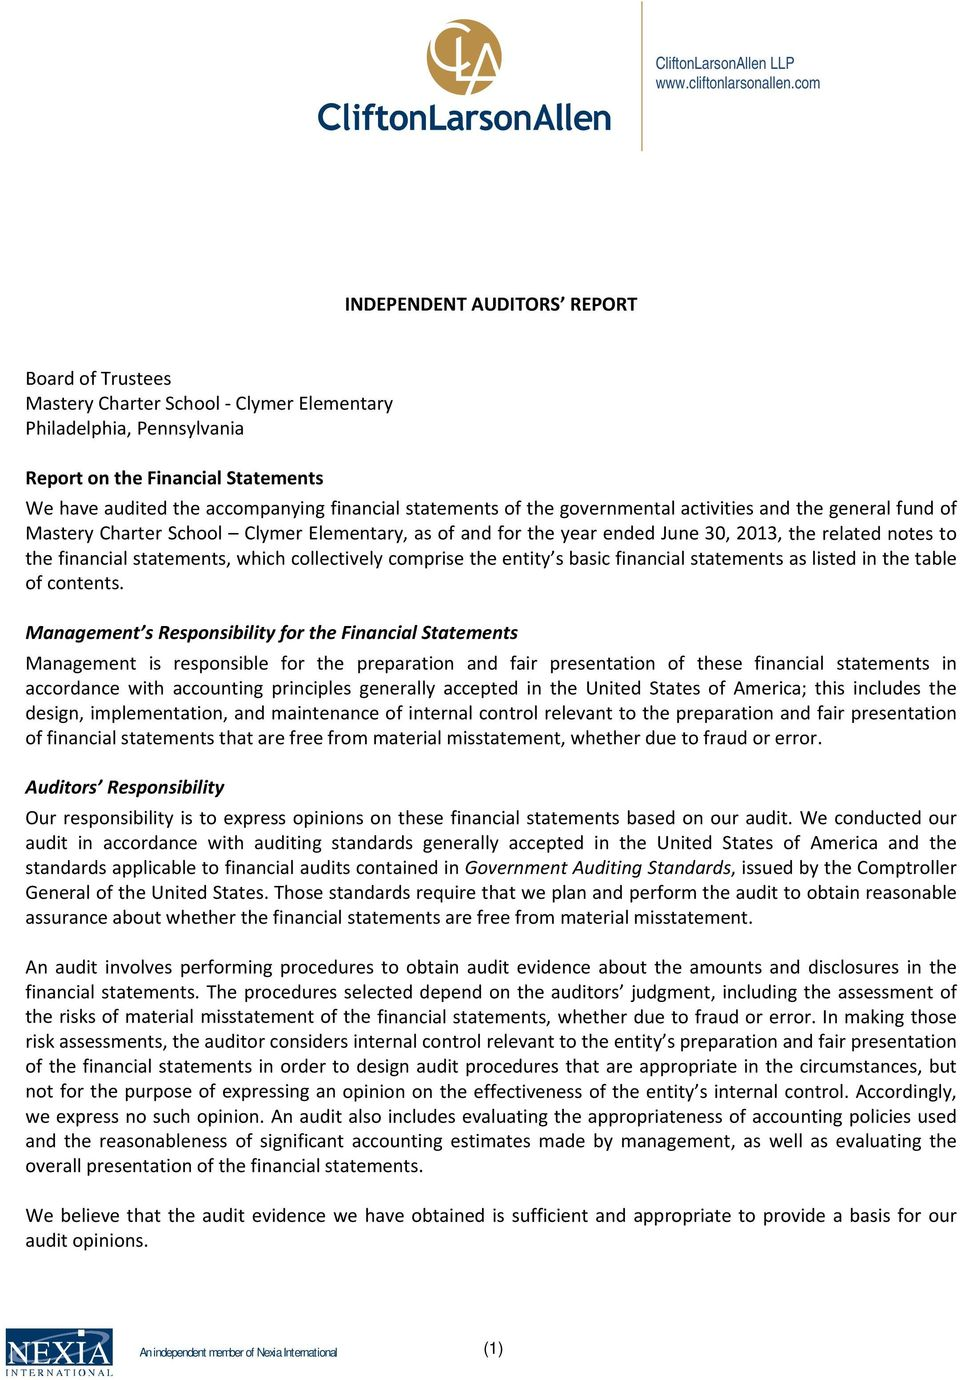 statements of the governmental activities and the general fund of Mastery Charter School Clymer Elementary, as of and for the year ended June 30, 2013, the related notes to the financial statements,